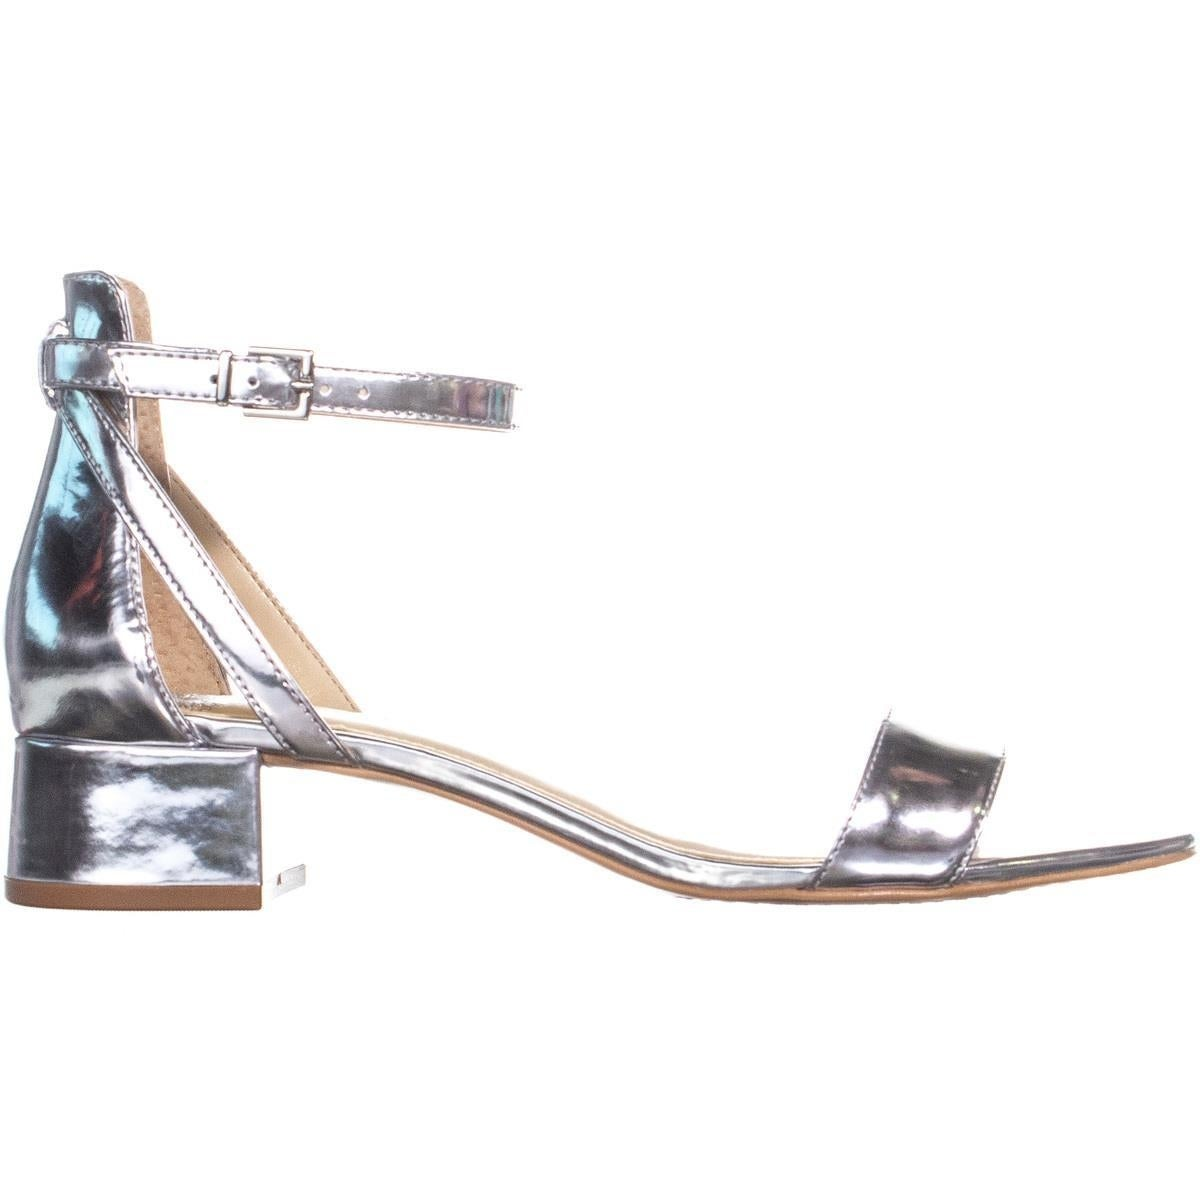 b0843bf334 Shop Vince Camuto Shetana Ankle Strap Sandals, Bright Silver - 8 us / 38 eu  - Free Shipping Today - Overstock - 23533722